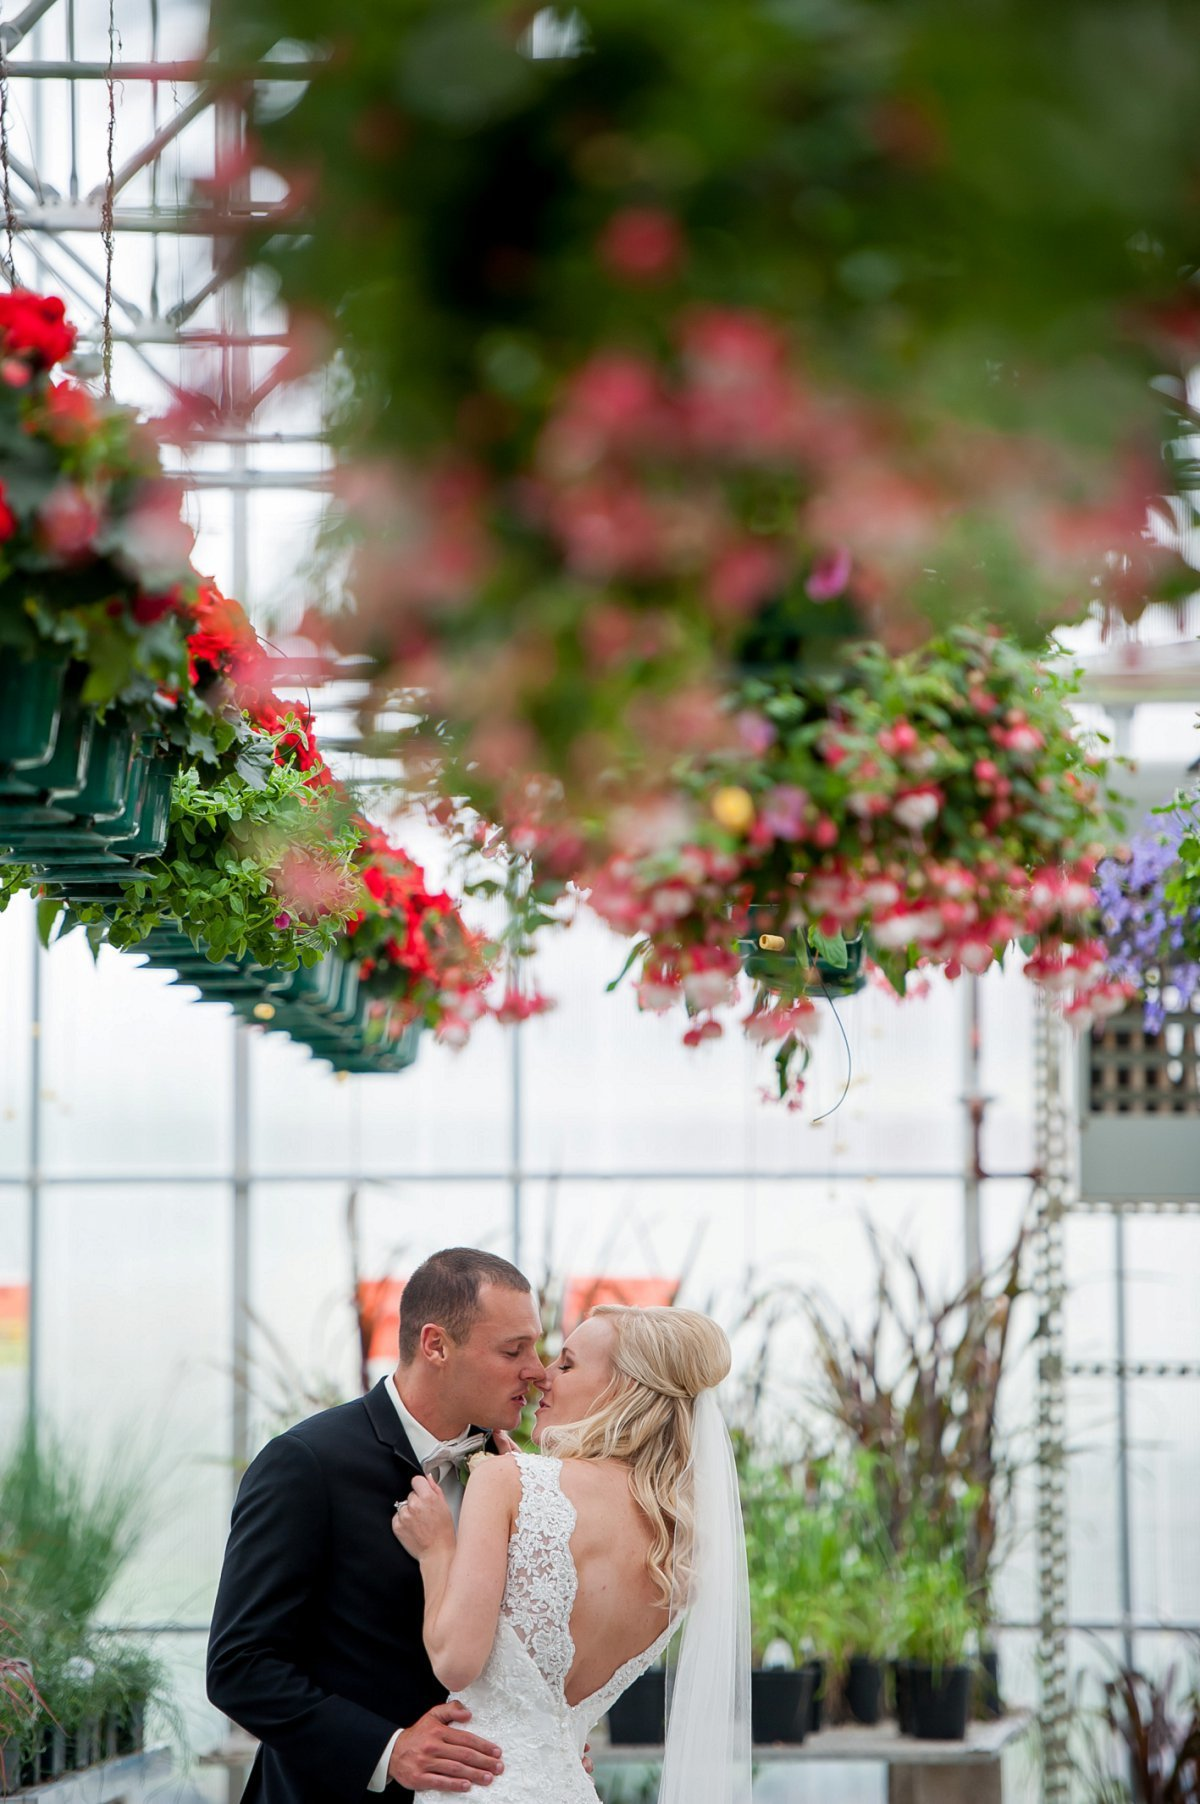 Wedding portraits in a greenhouse, boho modern weddings photography by Kriskandel